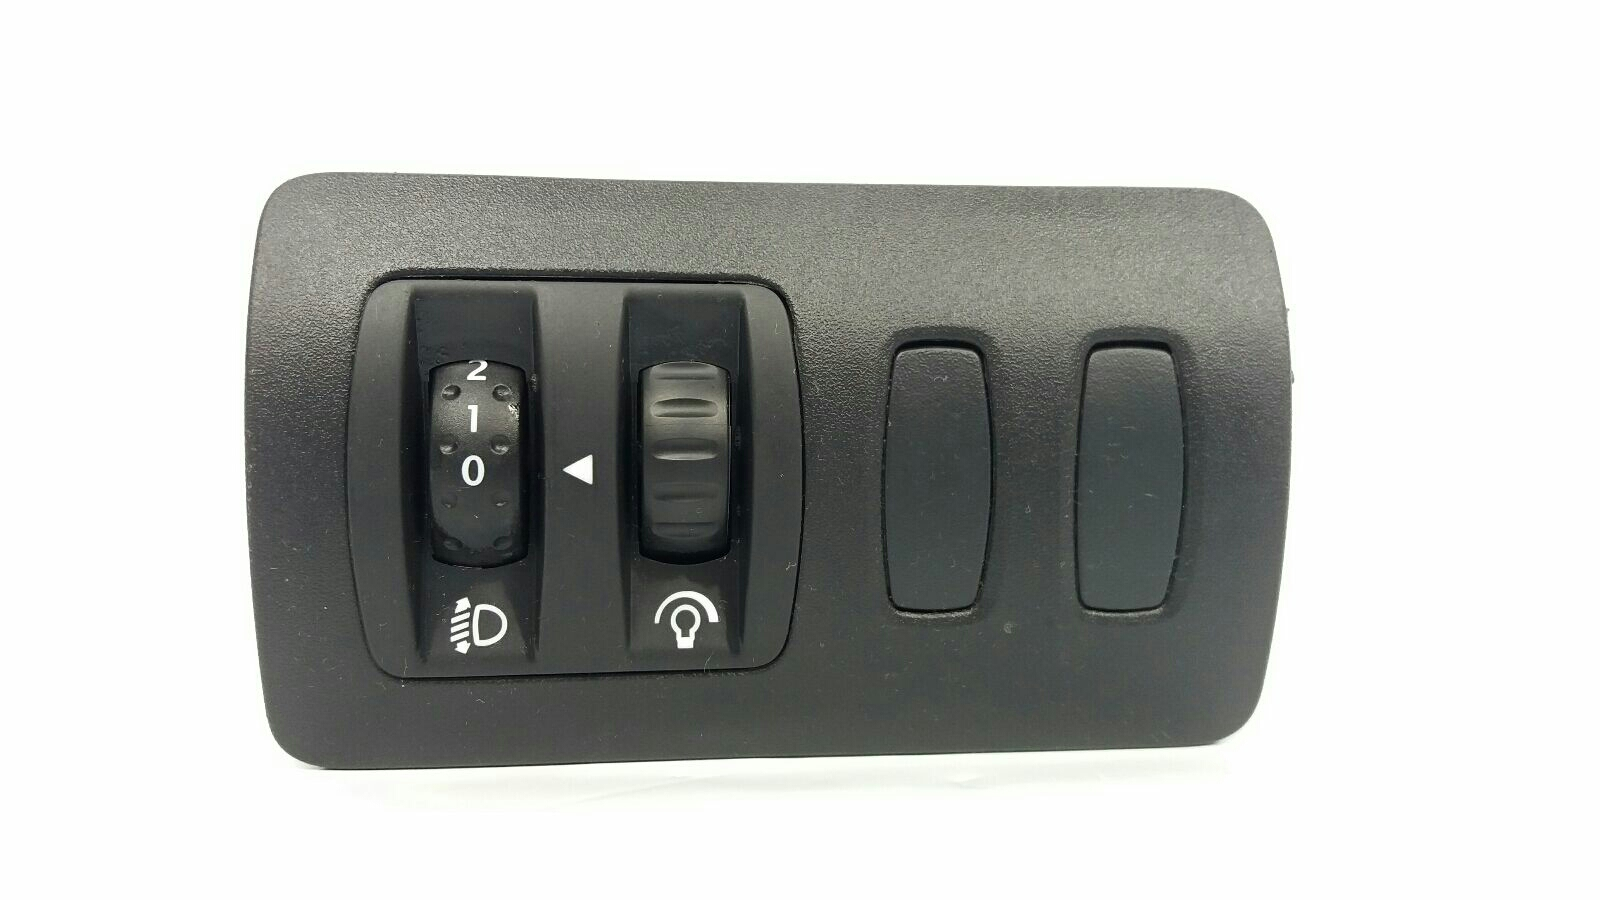 Renault Clio 2009 To 2012 Dynamique TomTom Switch Headlamp